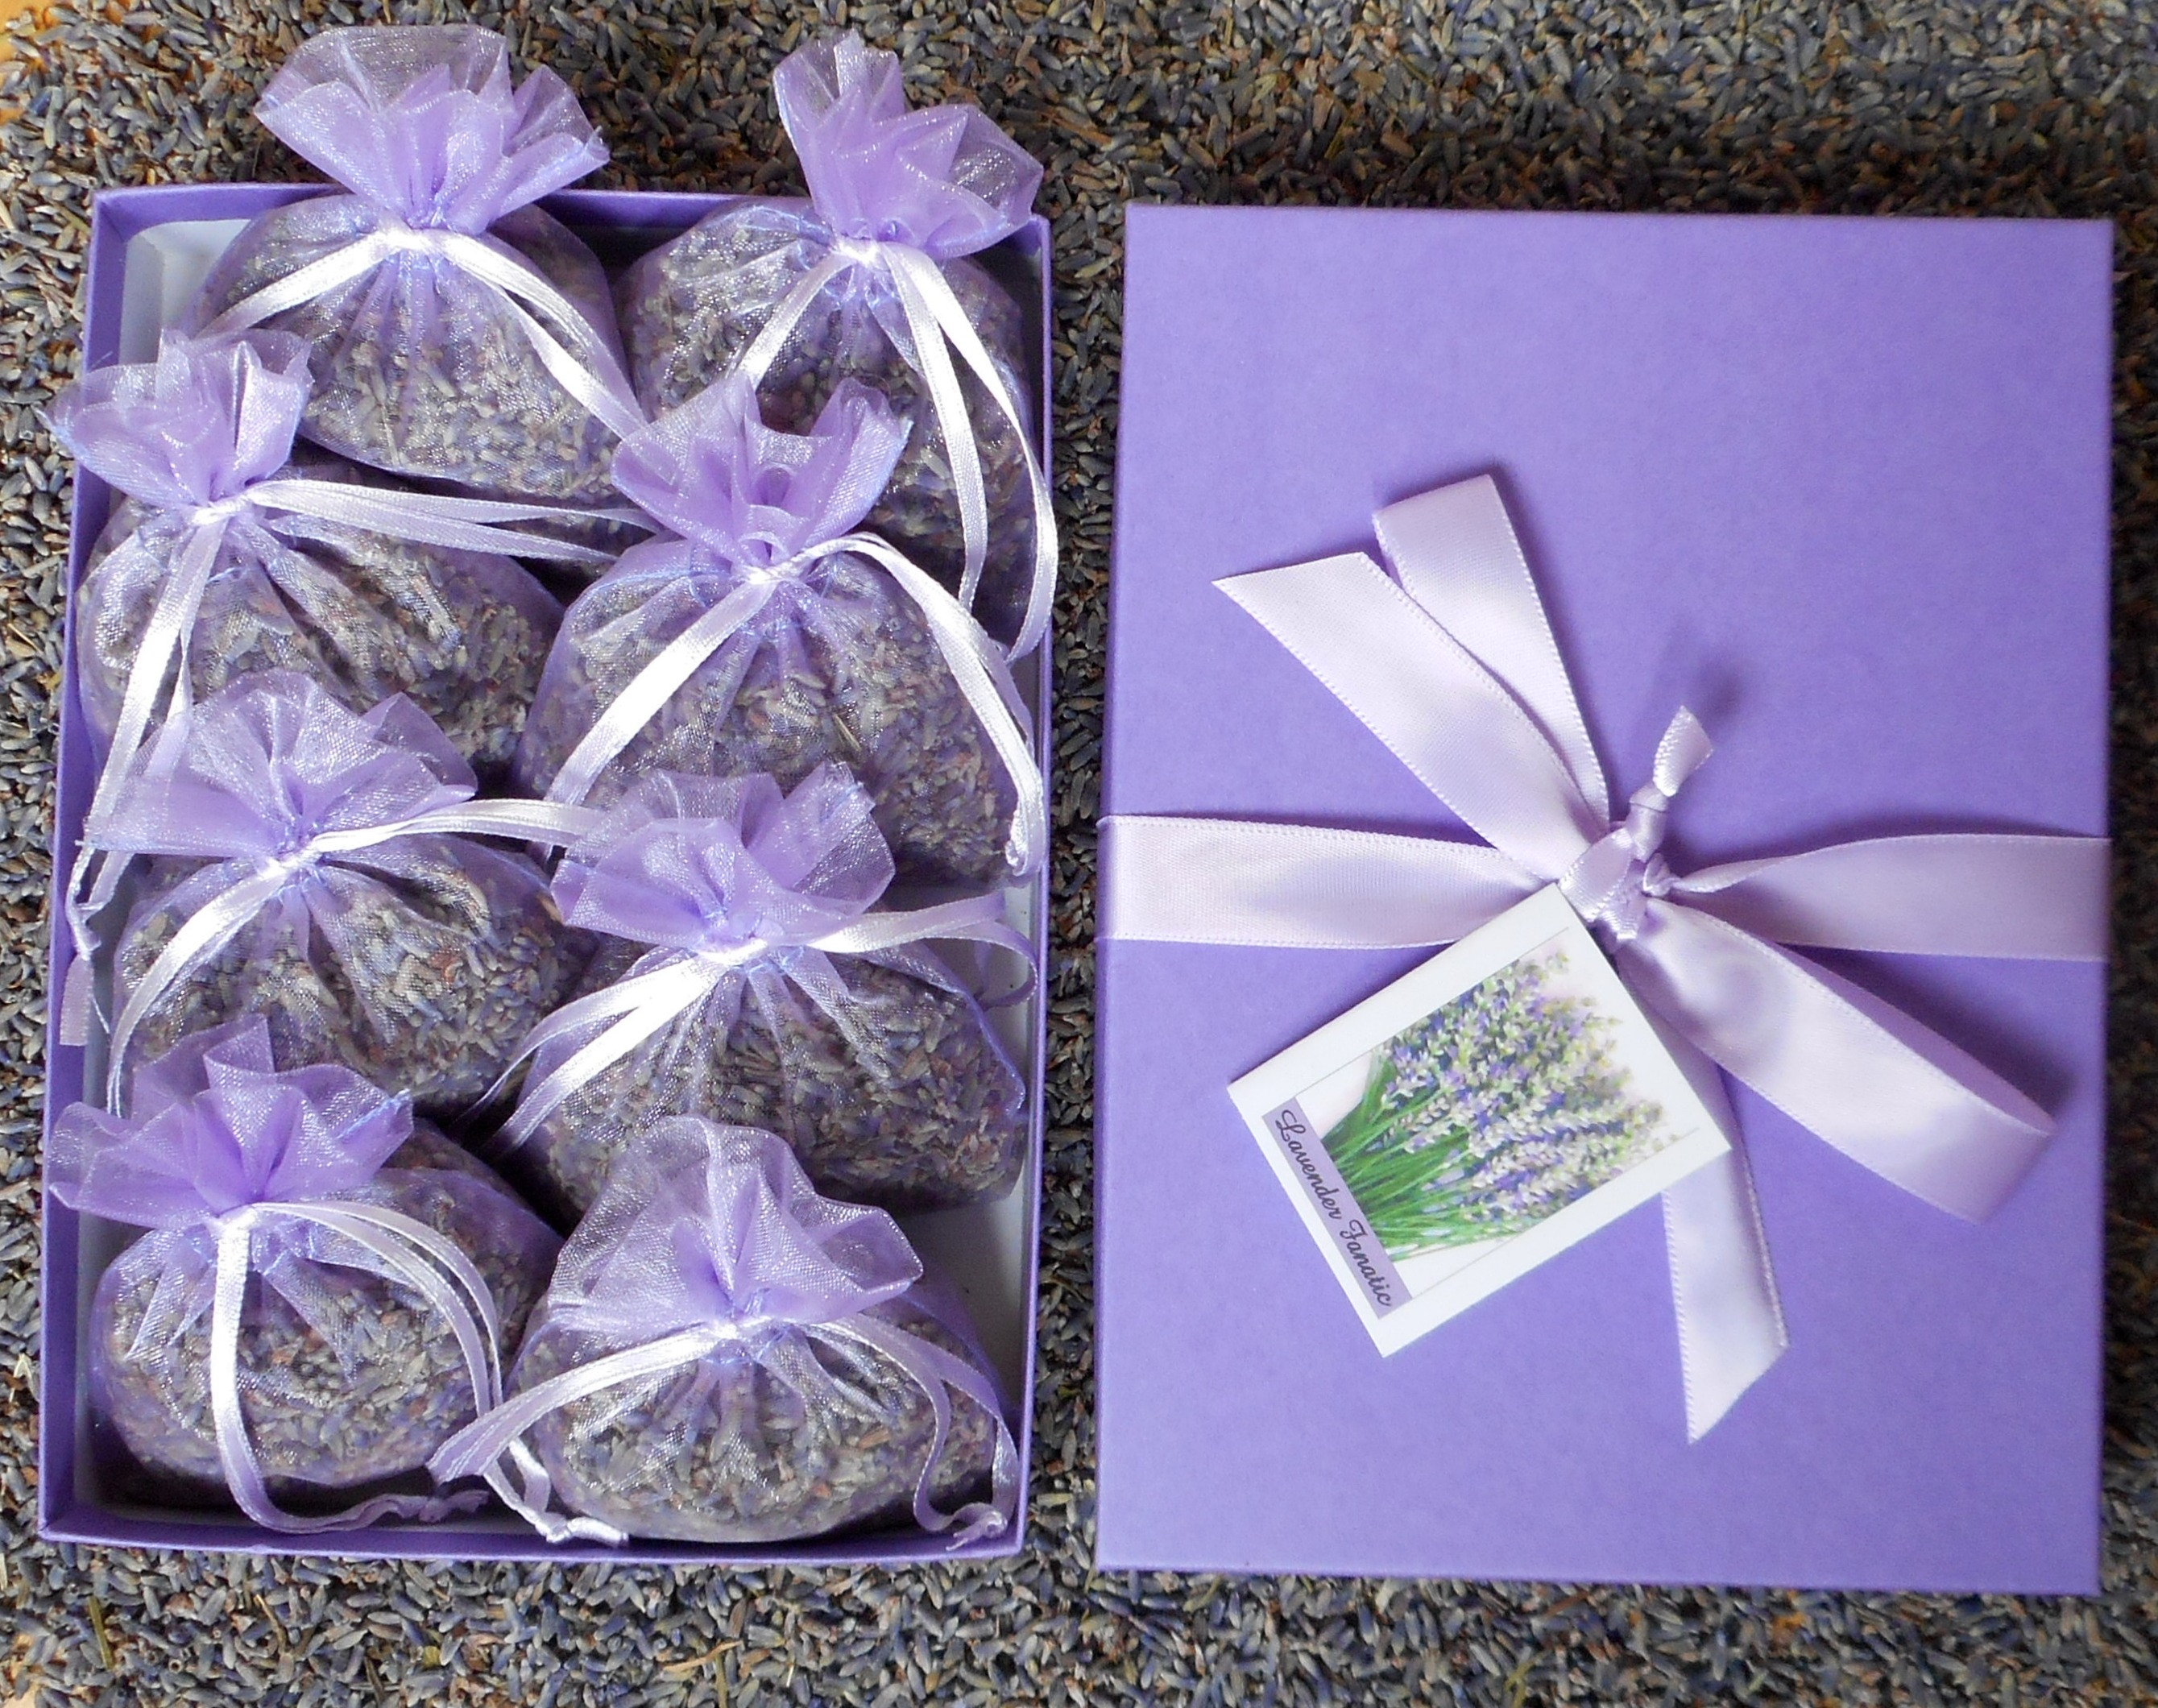 lavender sachet gift set  lavender fanatic products  gifts